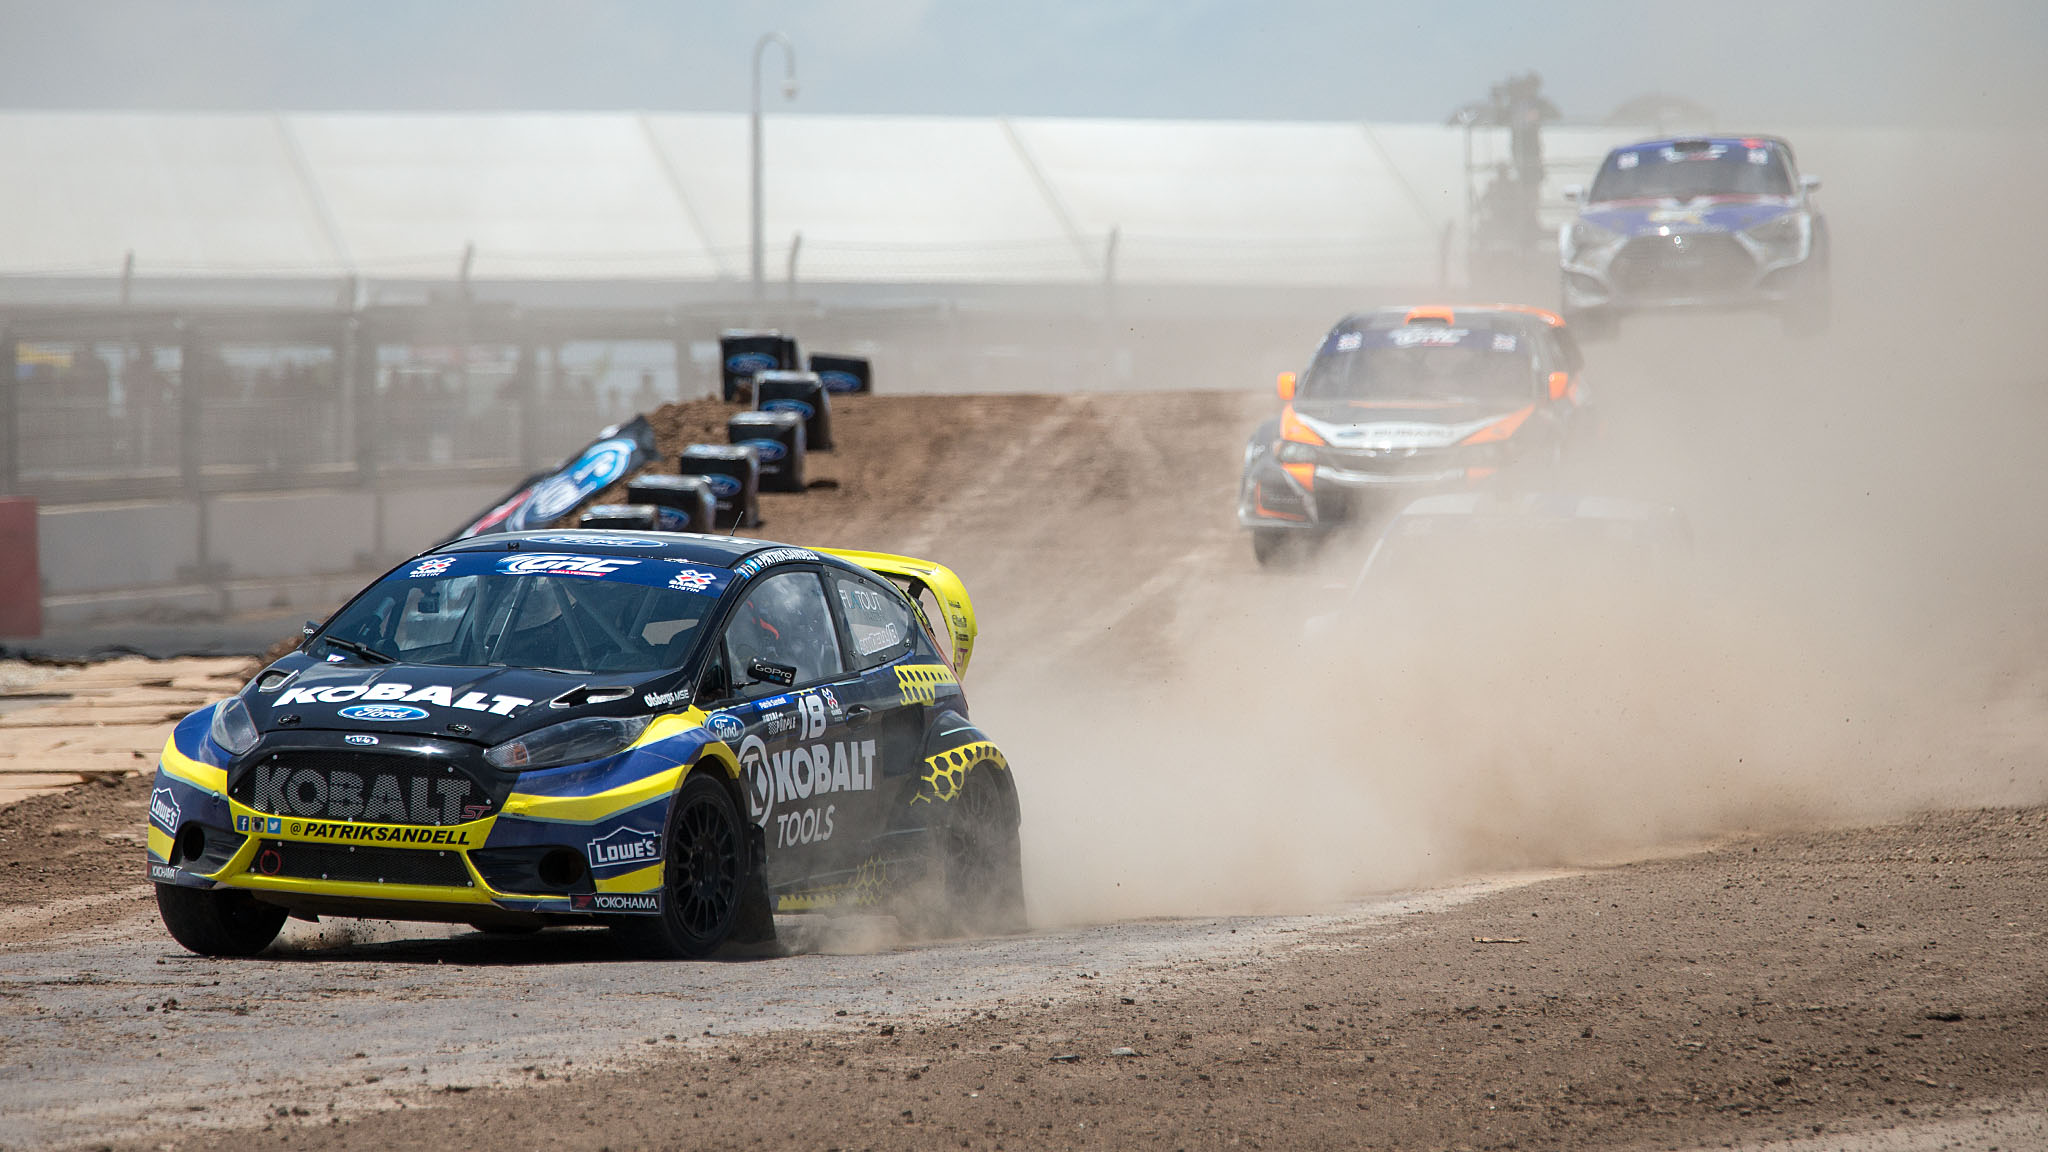 Sweden's Patrik Sandell holds a RallyCross bronze from X Games Foz do Iguacu and a silver from GRID at X Games LA 2014. He stalled in a corner, causing a red flag and a race restart during the Ford RallyCross final Saturday. Sandell tried to join the restart, but as his stall caused the red flag, he was disqualified and forced to drive off the course instead.